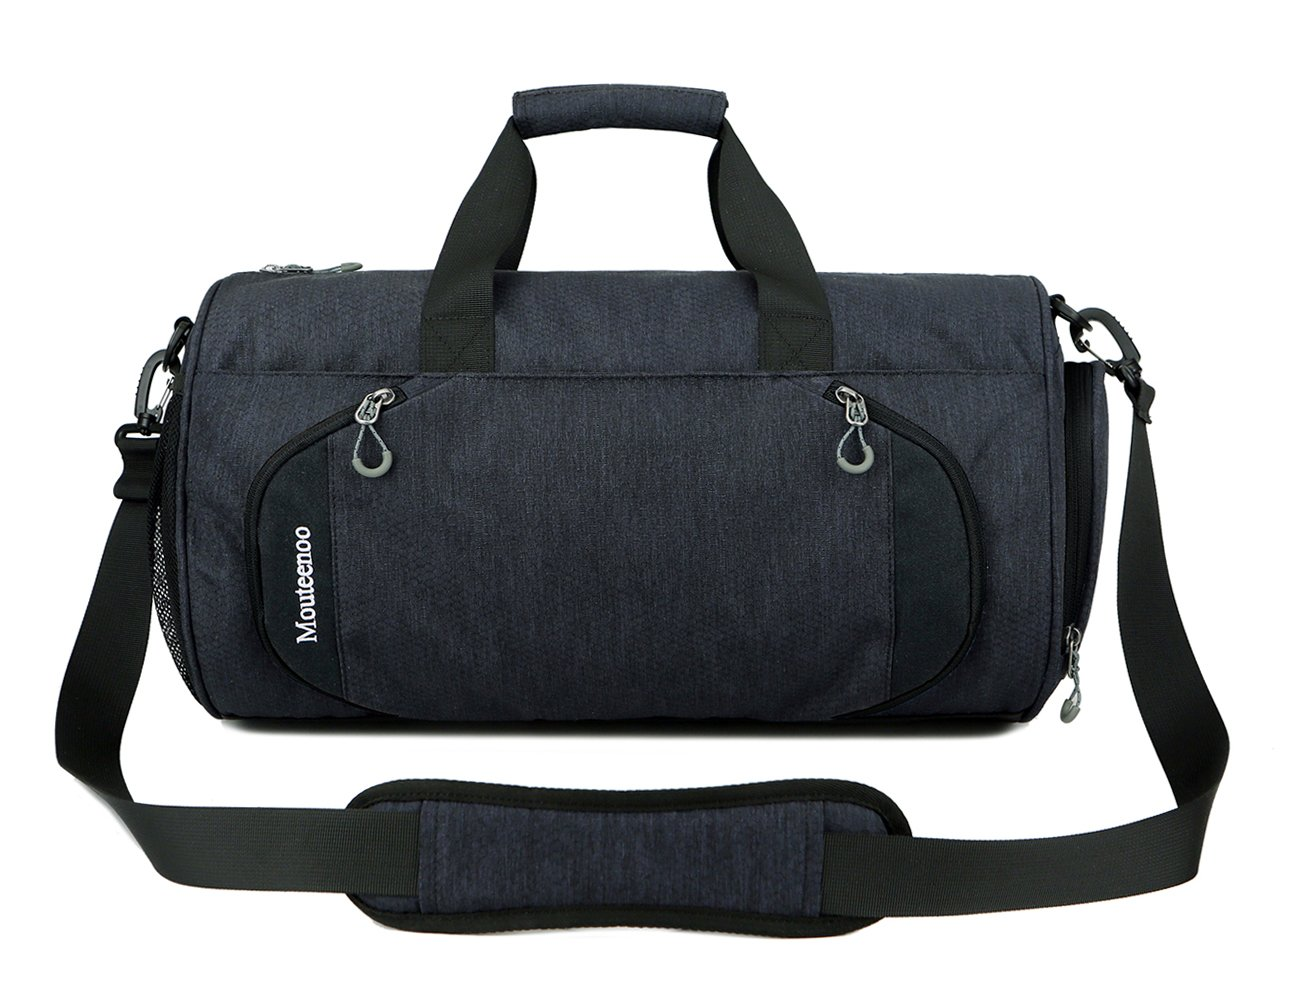 Gym Sports Duffle Bag for Men and Women with Shoes Compartment - Mouteenoo   Amazon.co.uk  Clothing b7f89774e4bc5